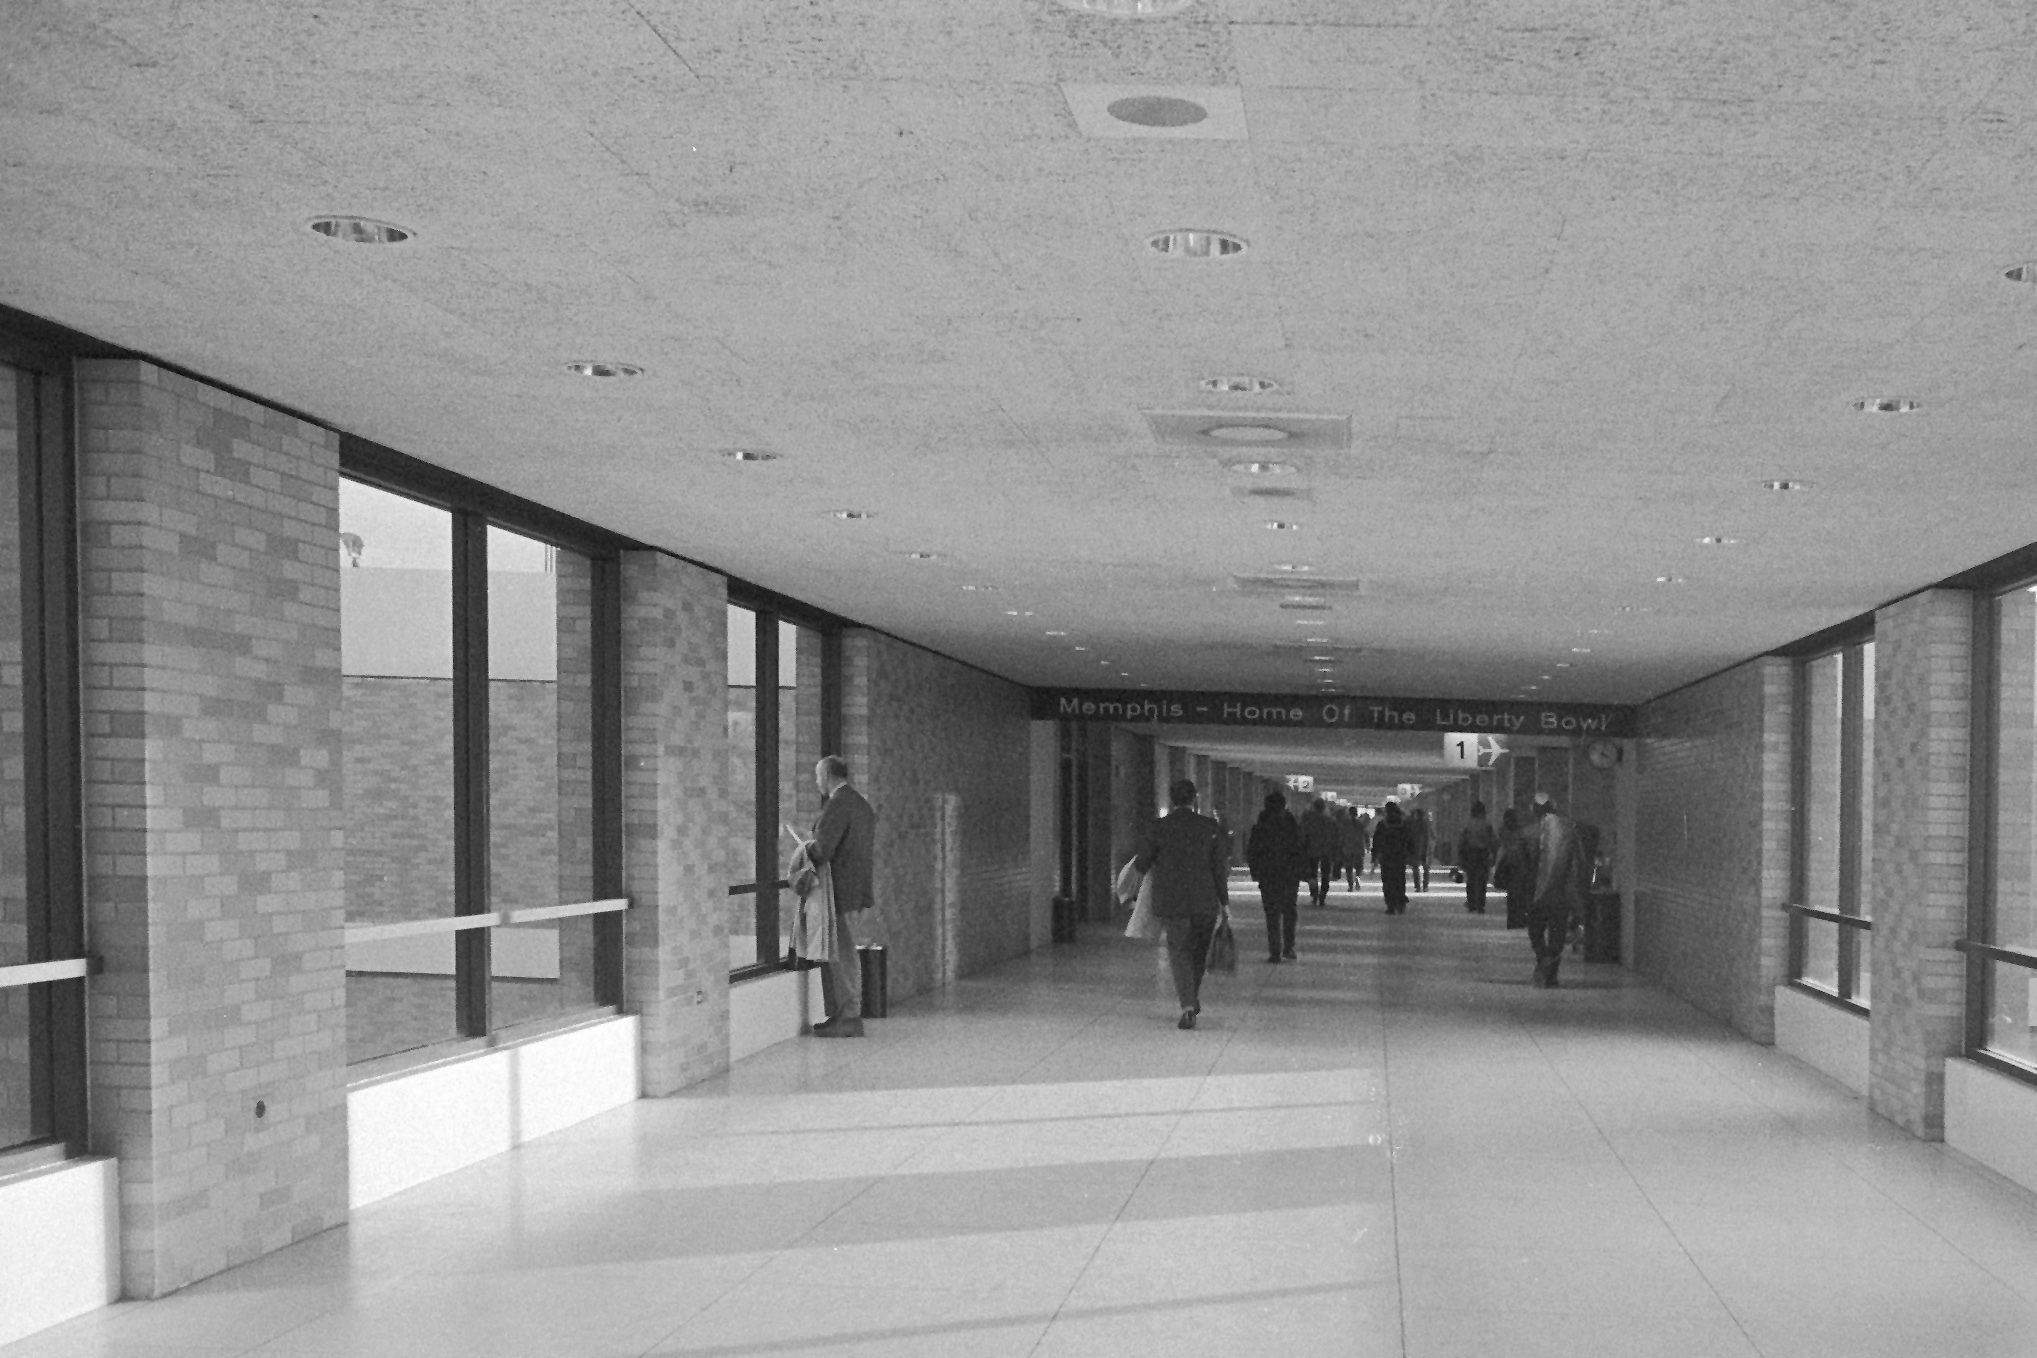 http://upload.wikimedia.org/wikipedia/commons/3/31/Memphis_International_Airport_hallway.jpg